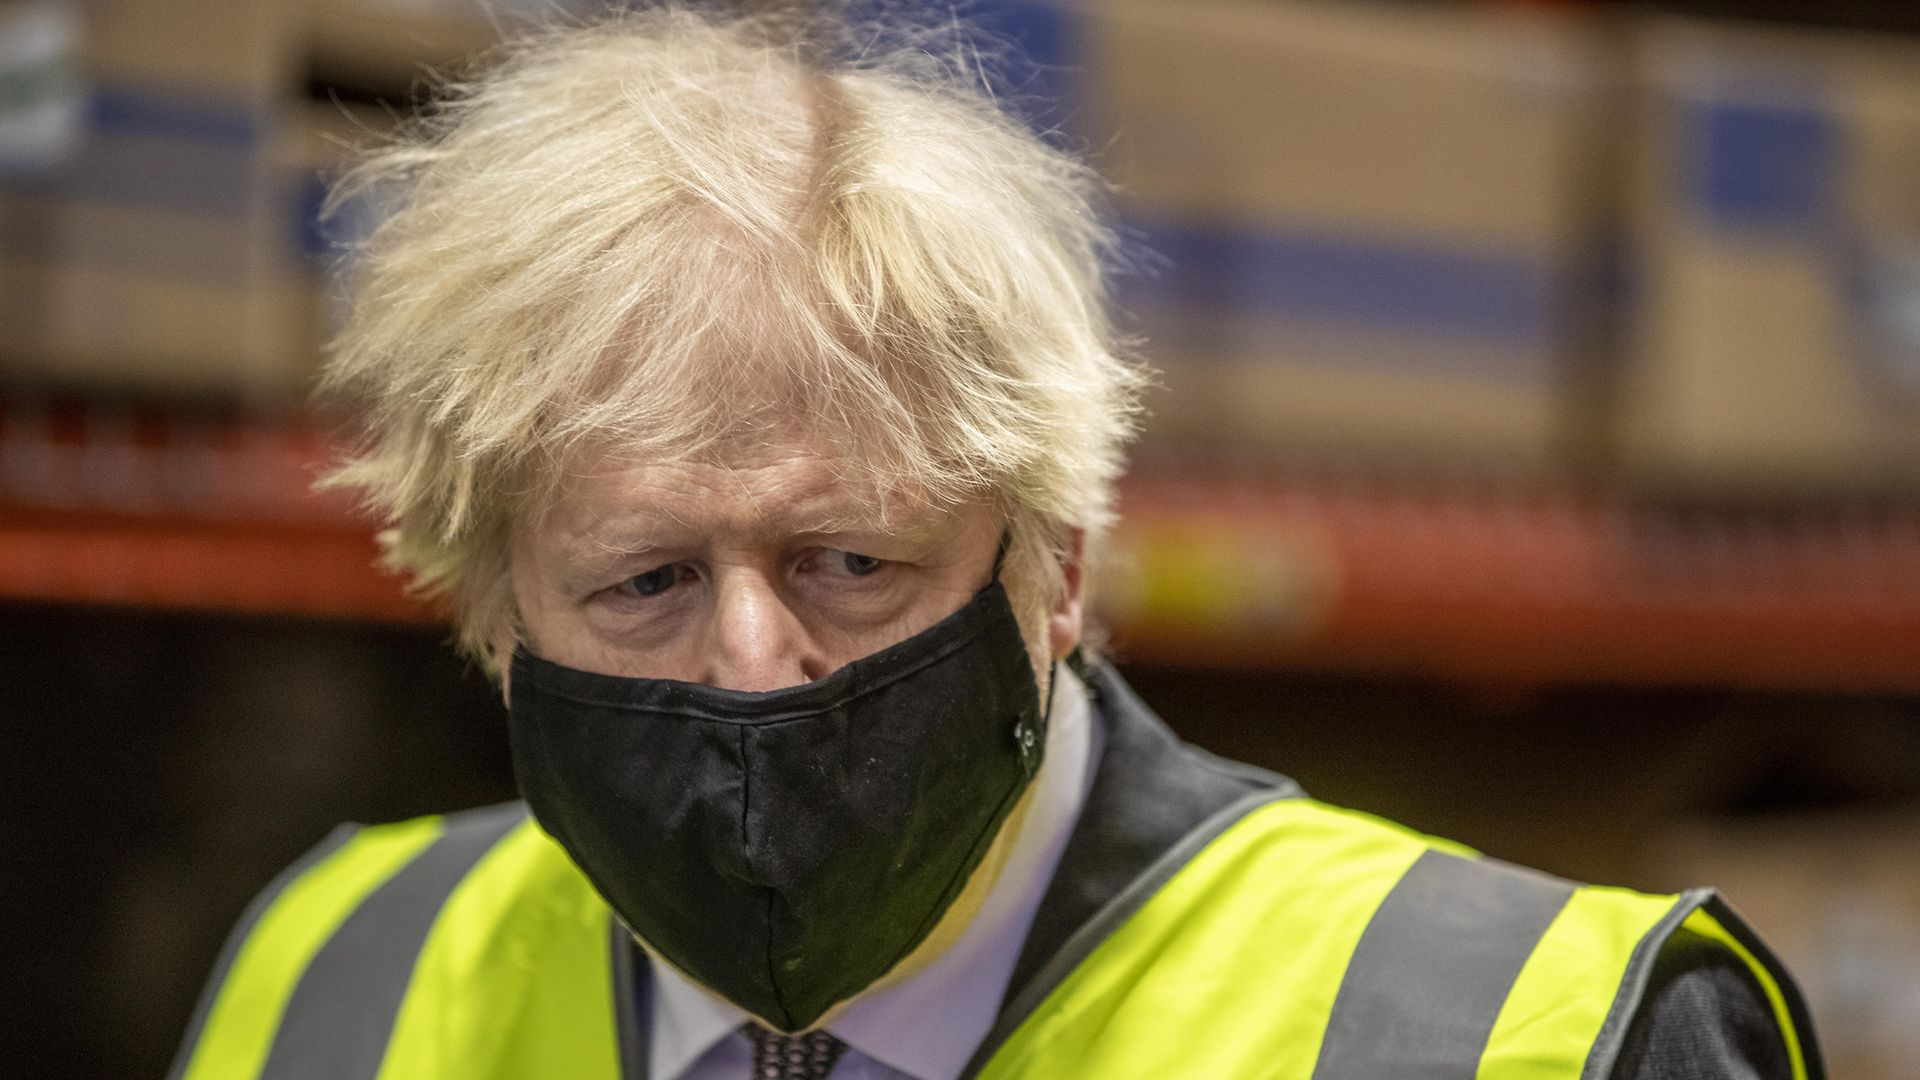 Prime Minister Boris Johnson, during a tour of the manufacturing facility for the Oxford/Astrazeneca vaccine at Oxford Biomedica in Oxfordshire - Credit: PA